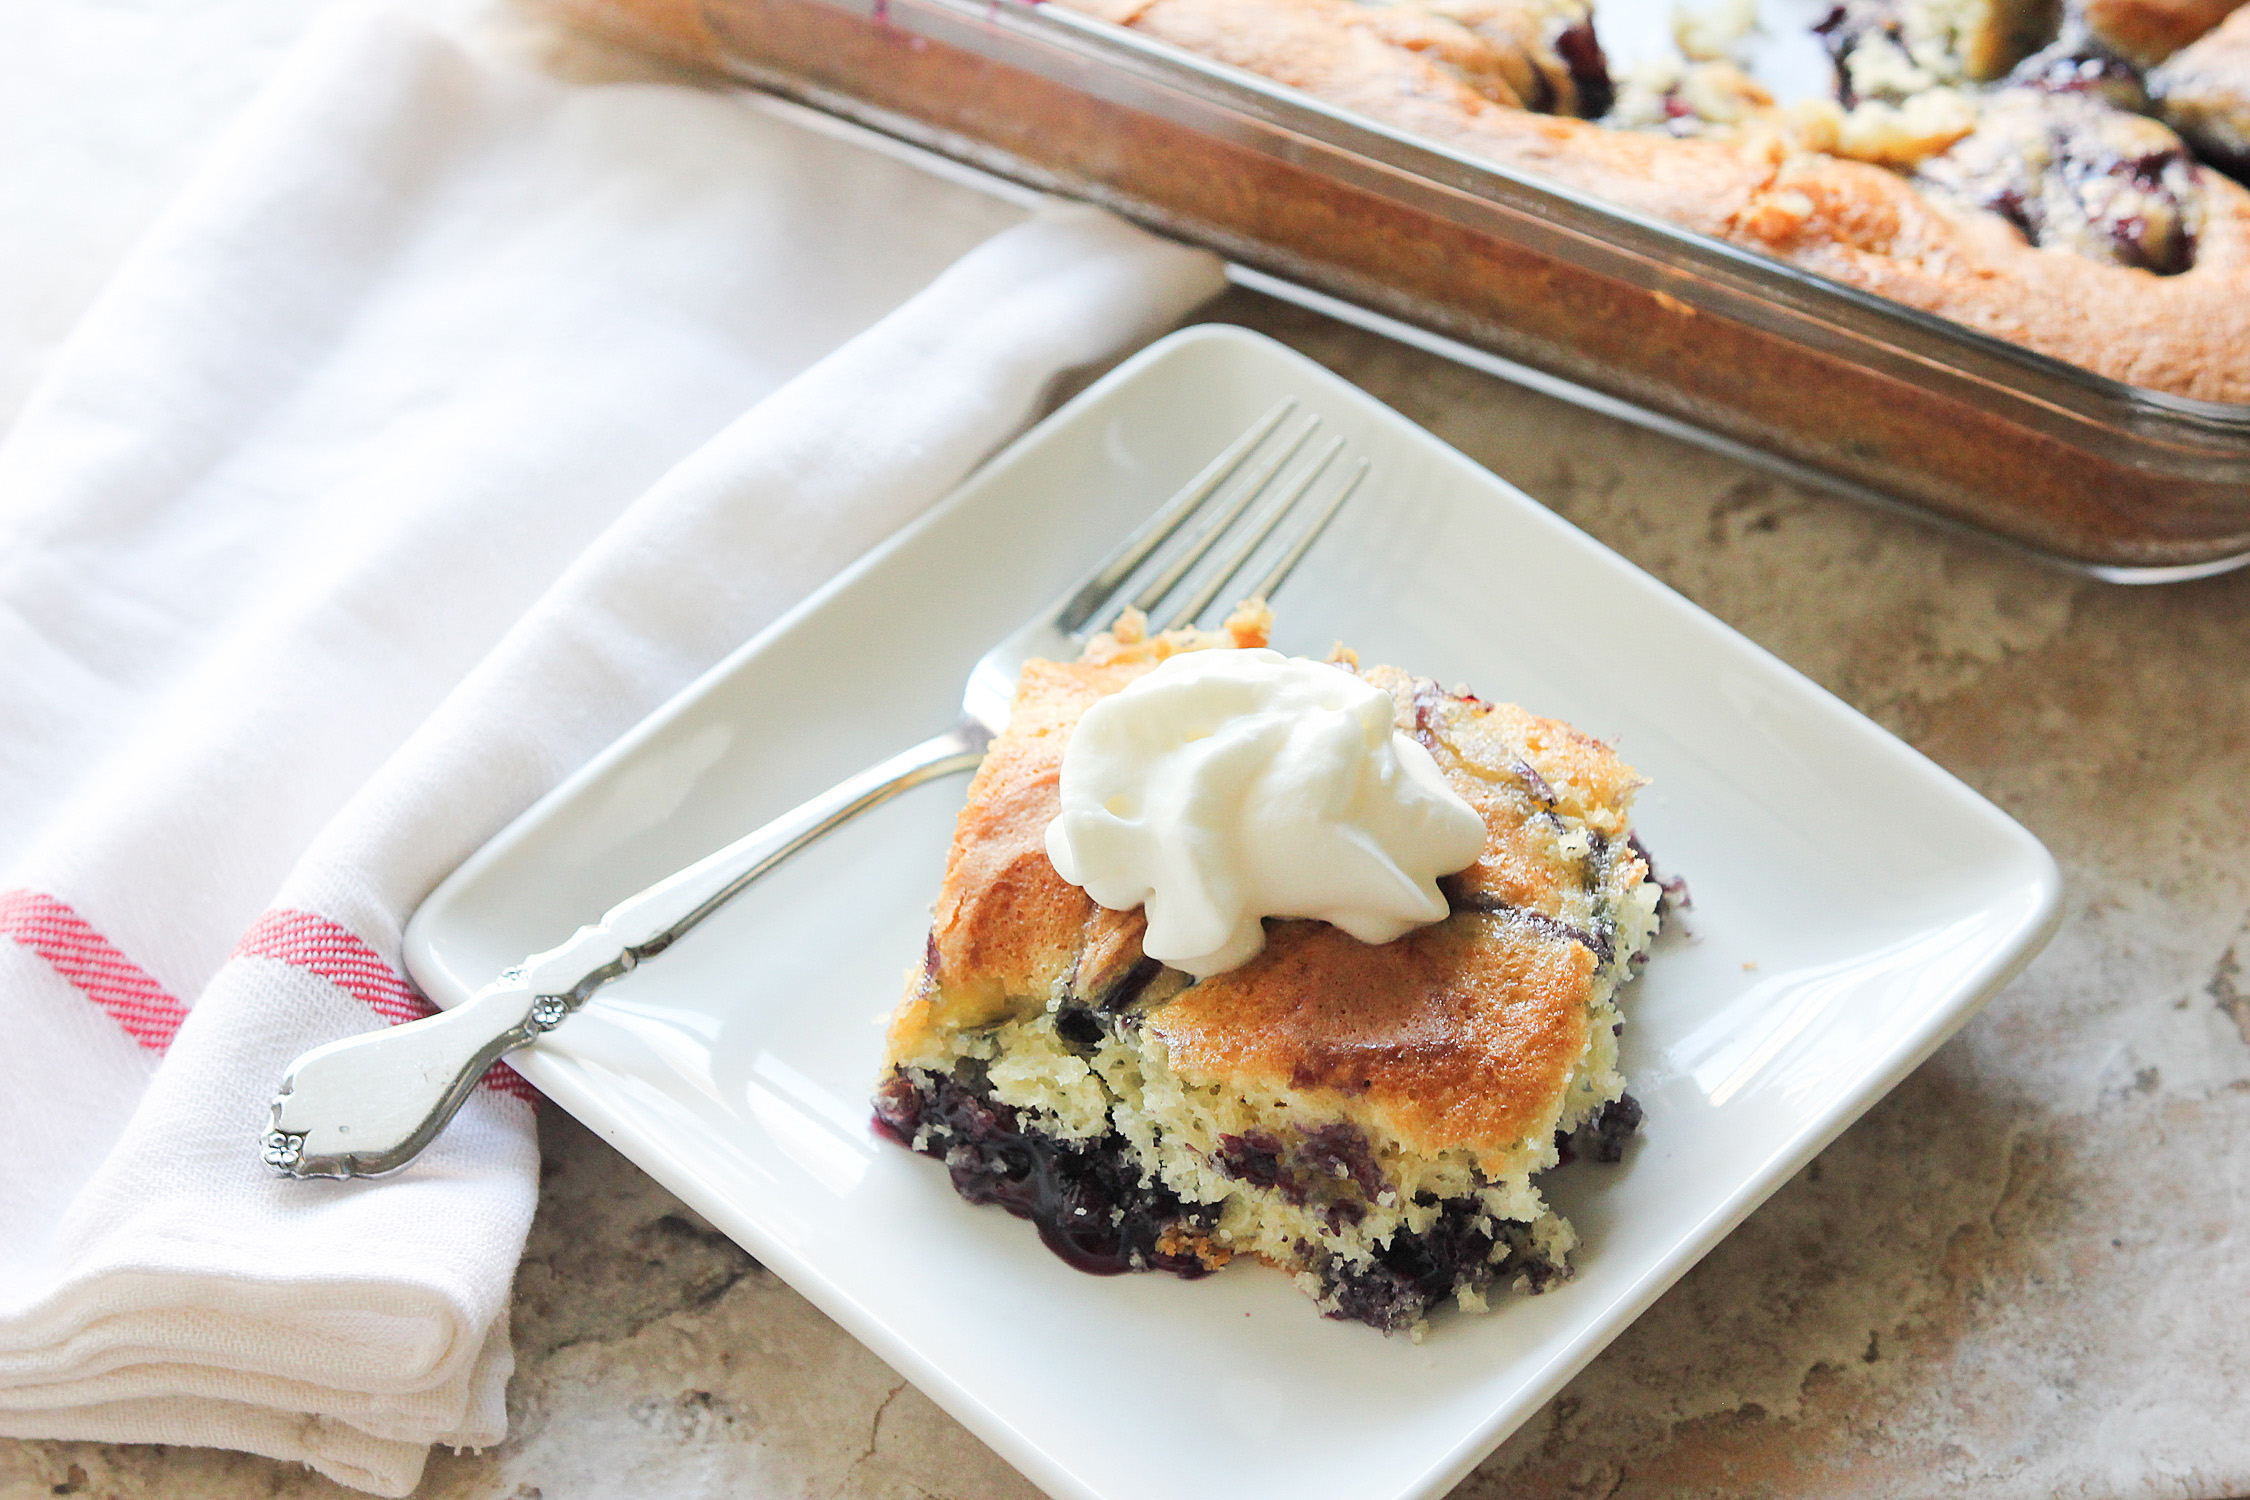 Blueberry Swirl Cake